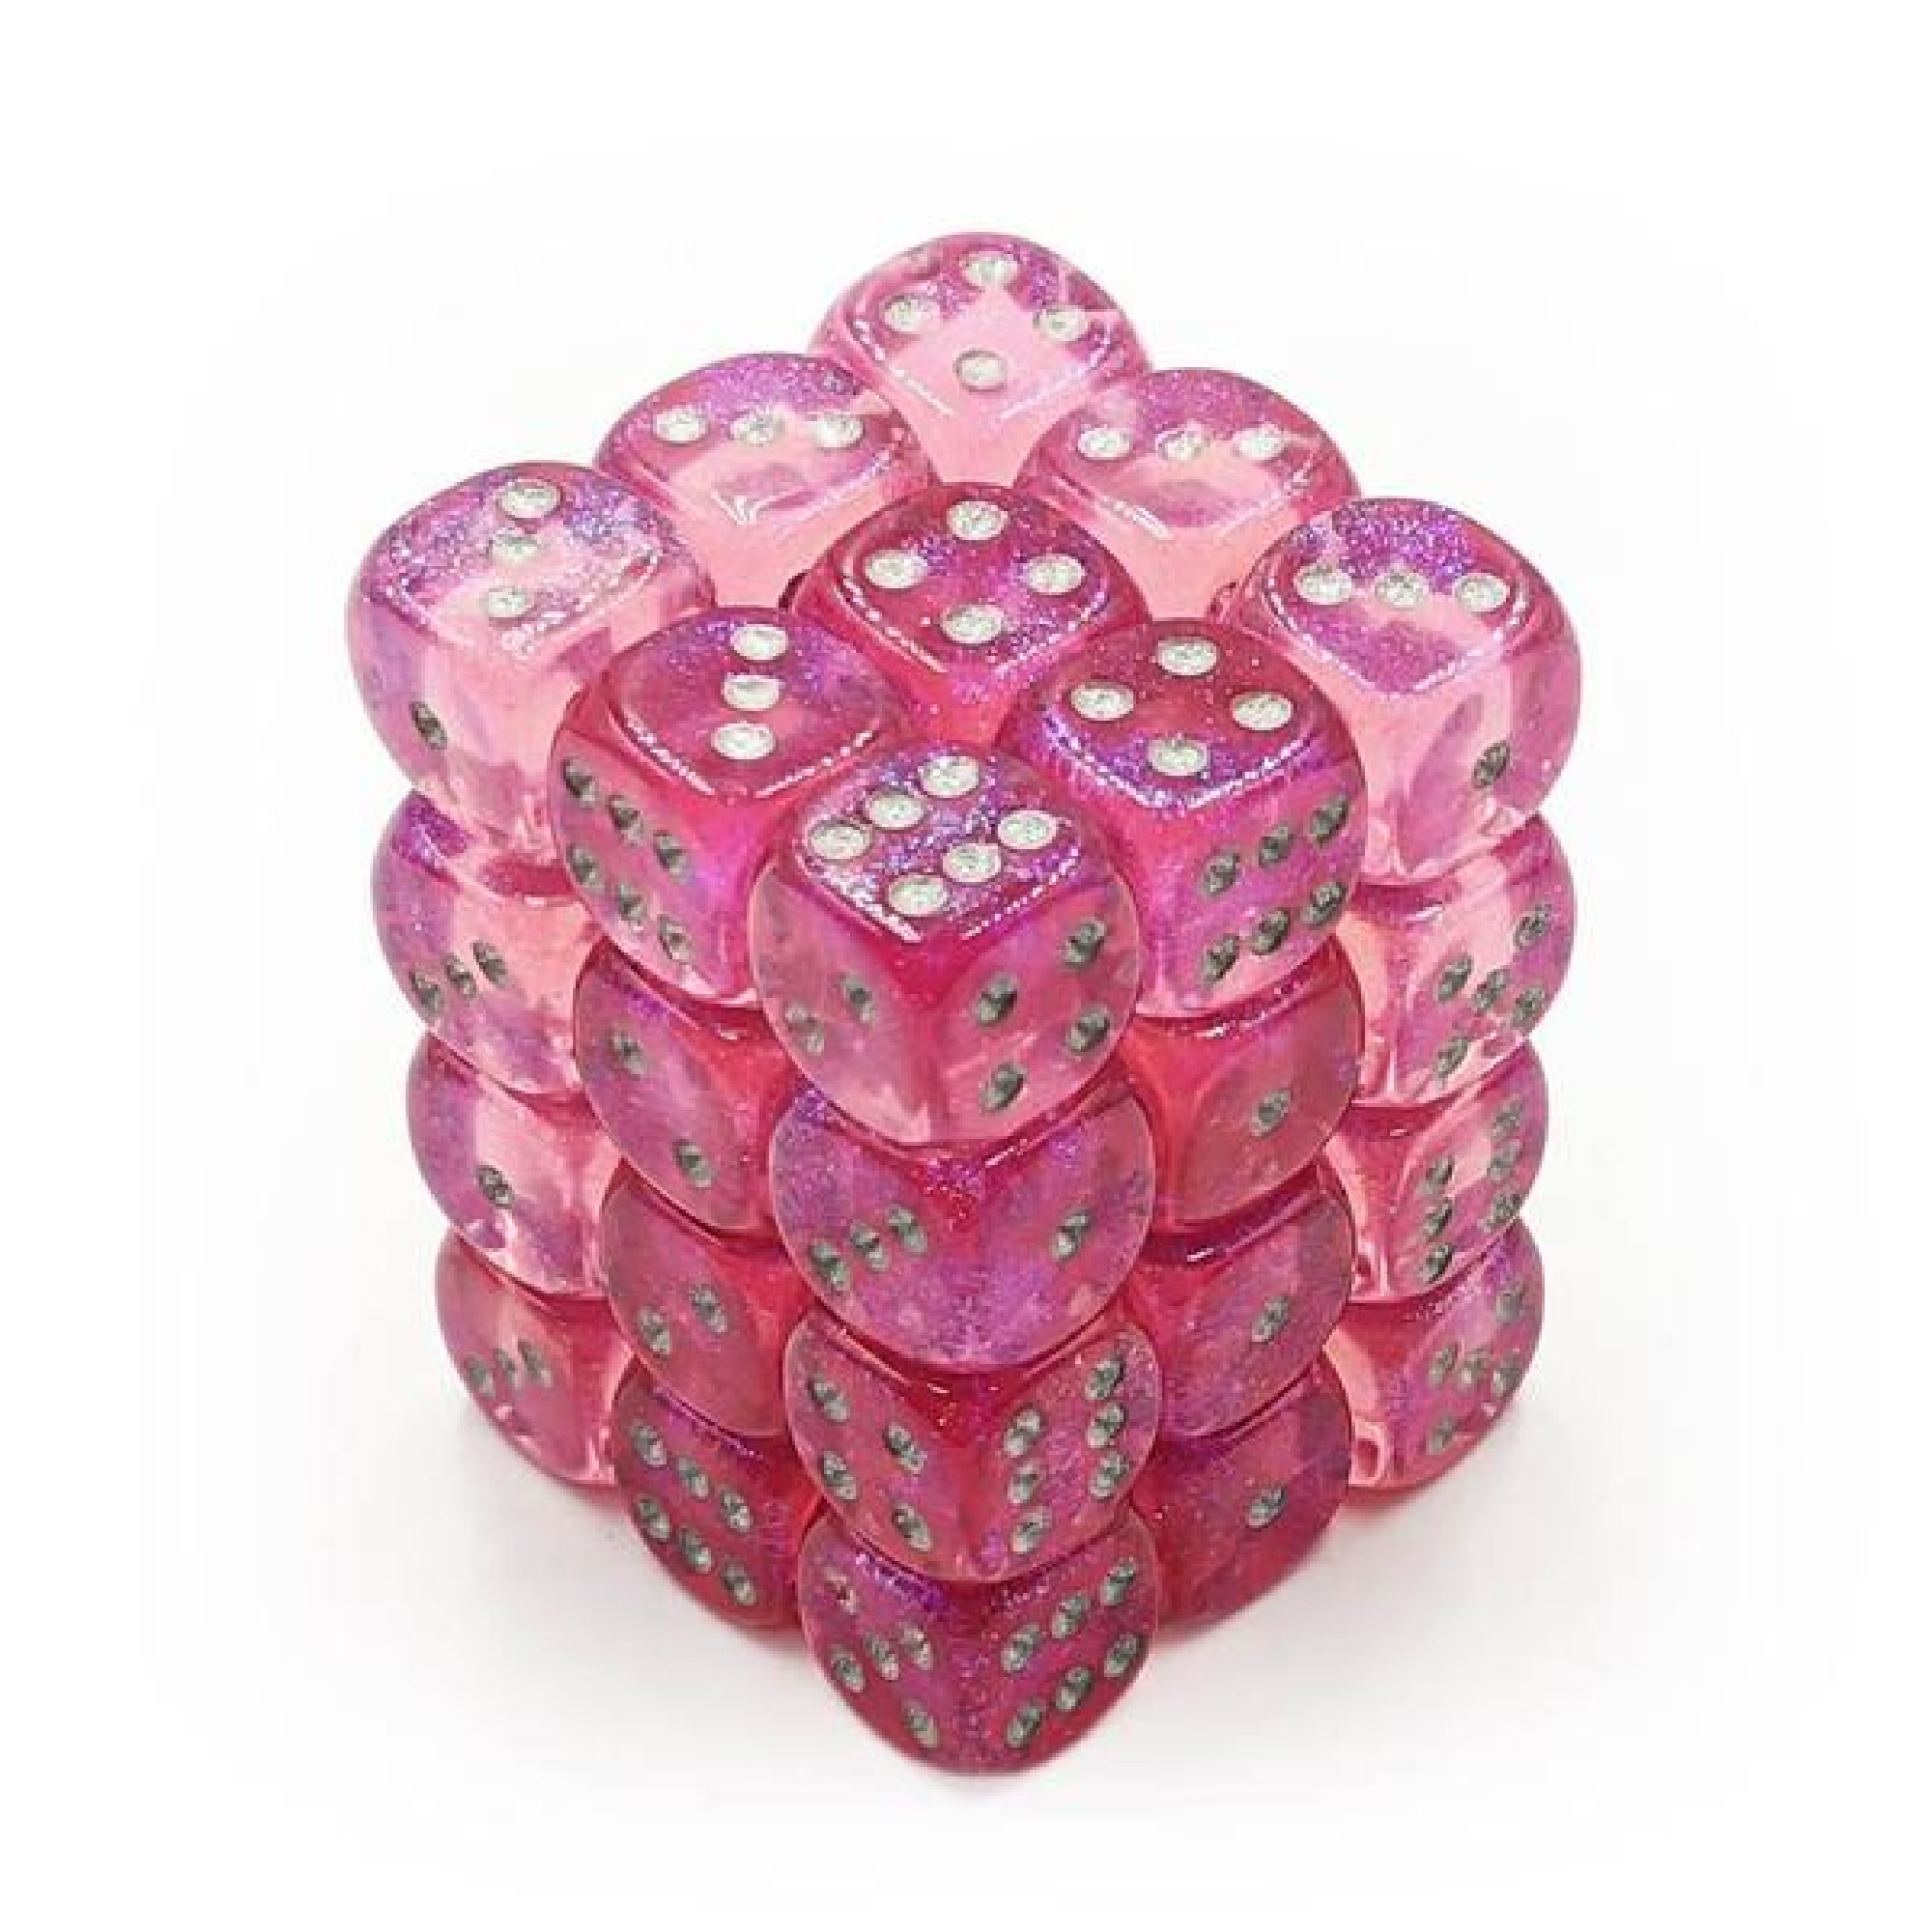 Chessex Borealis: 36D6 Pink/Silver